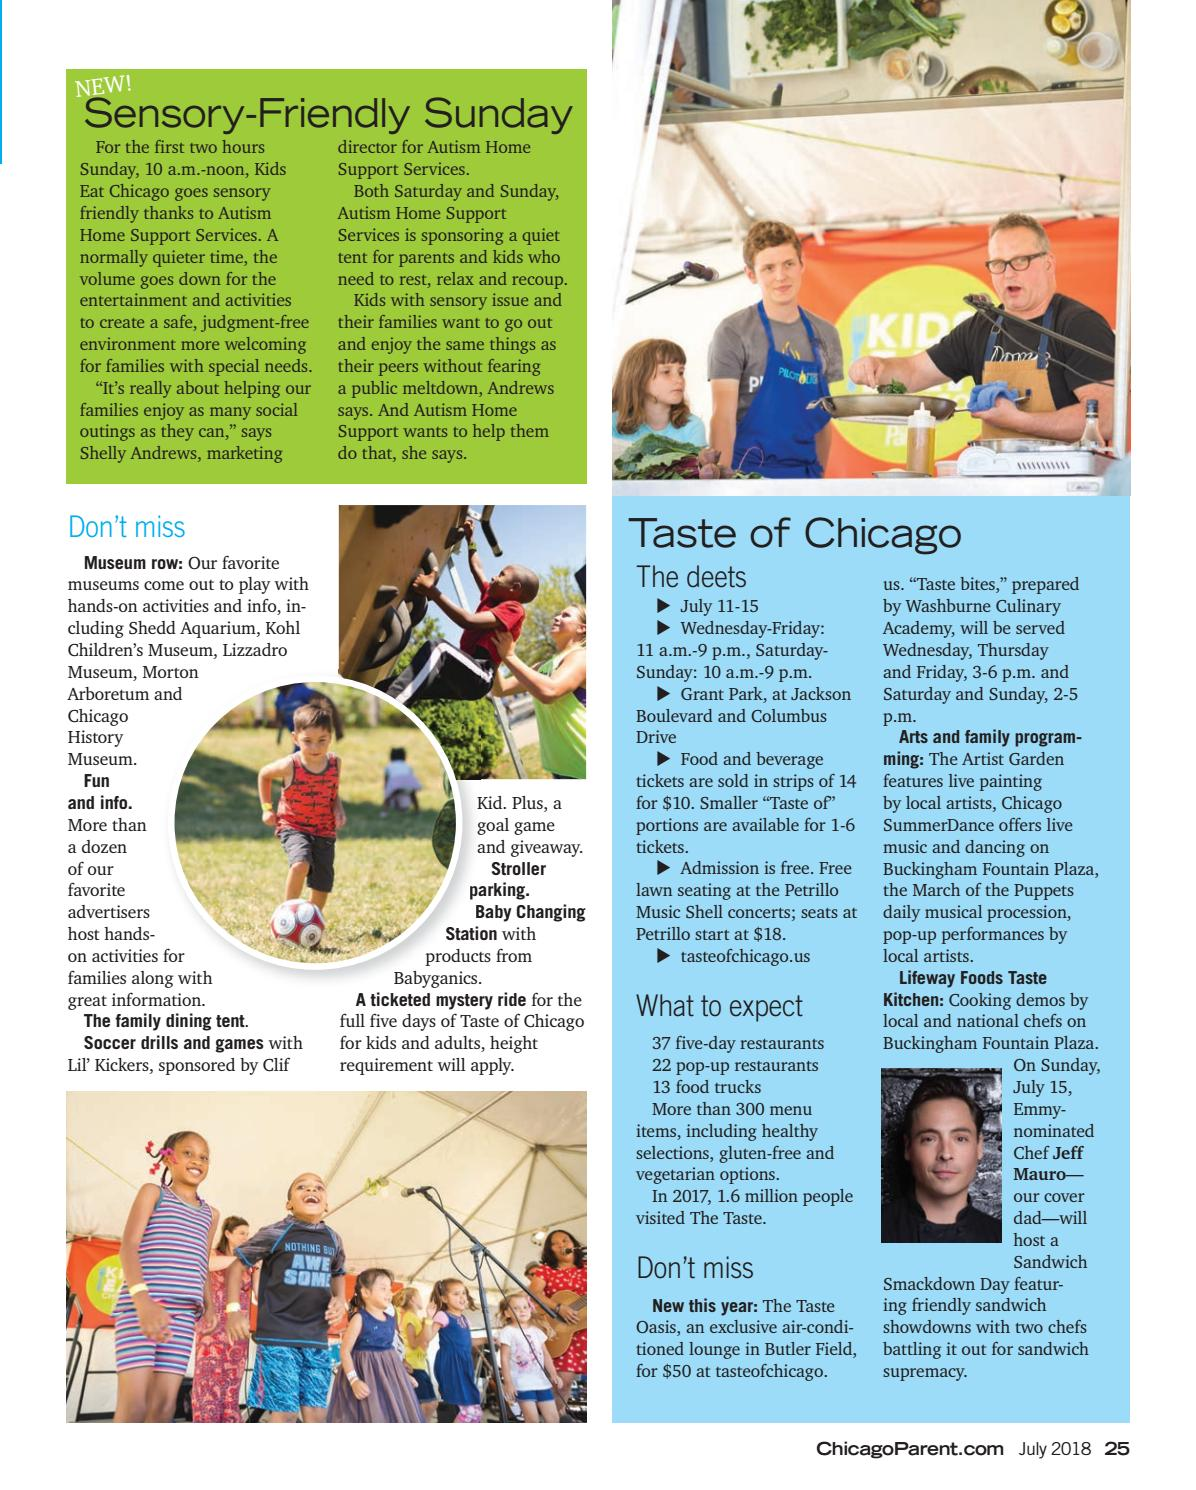 Chicago Parent July 2018 by Chicago Parent - issuu